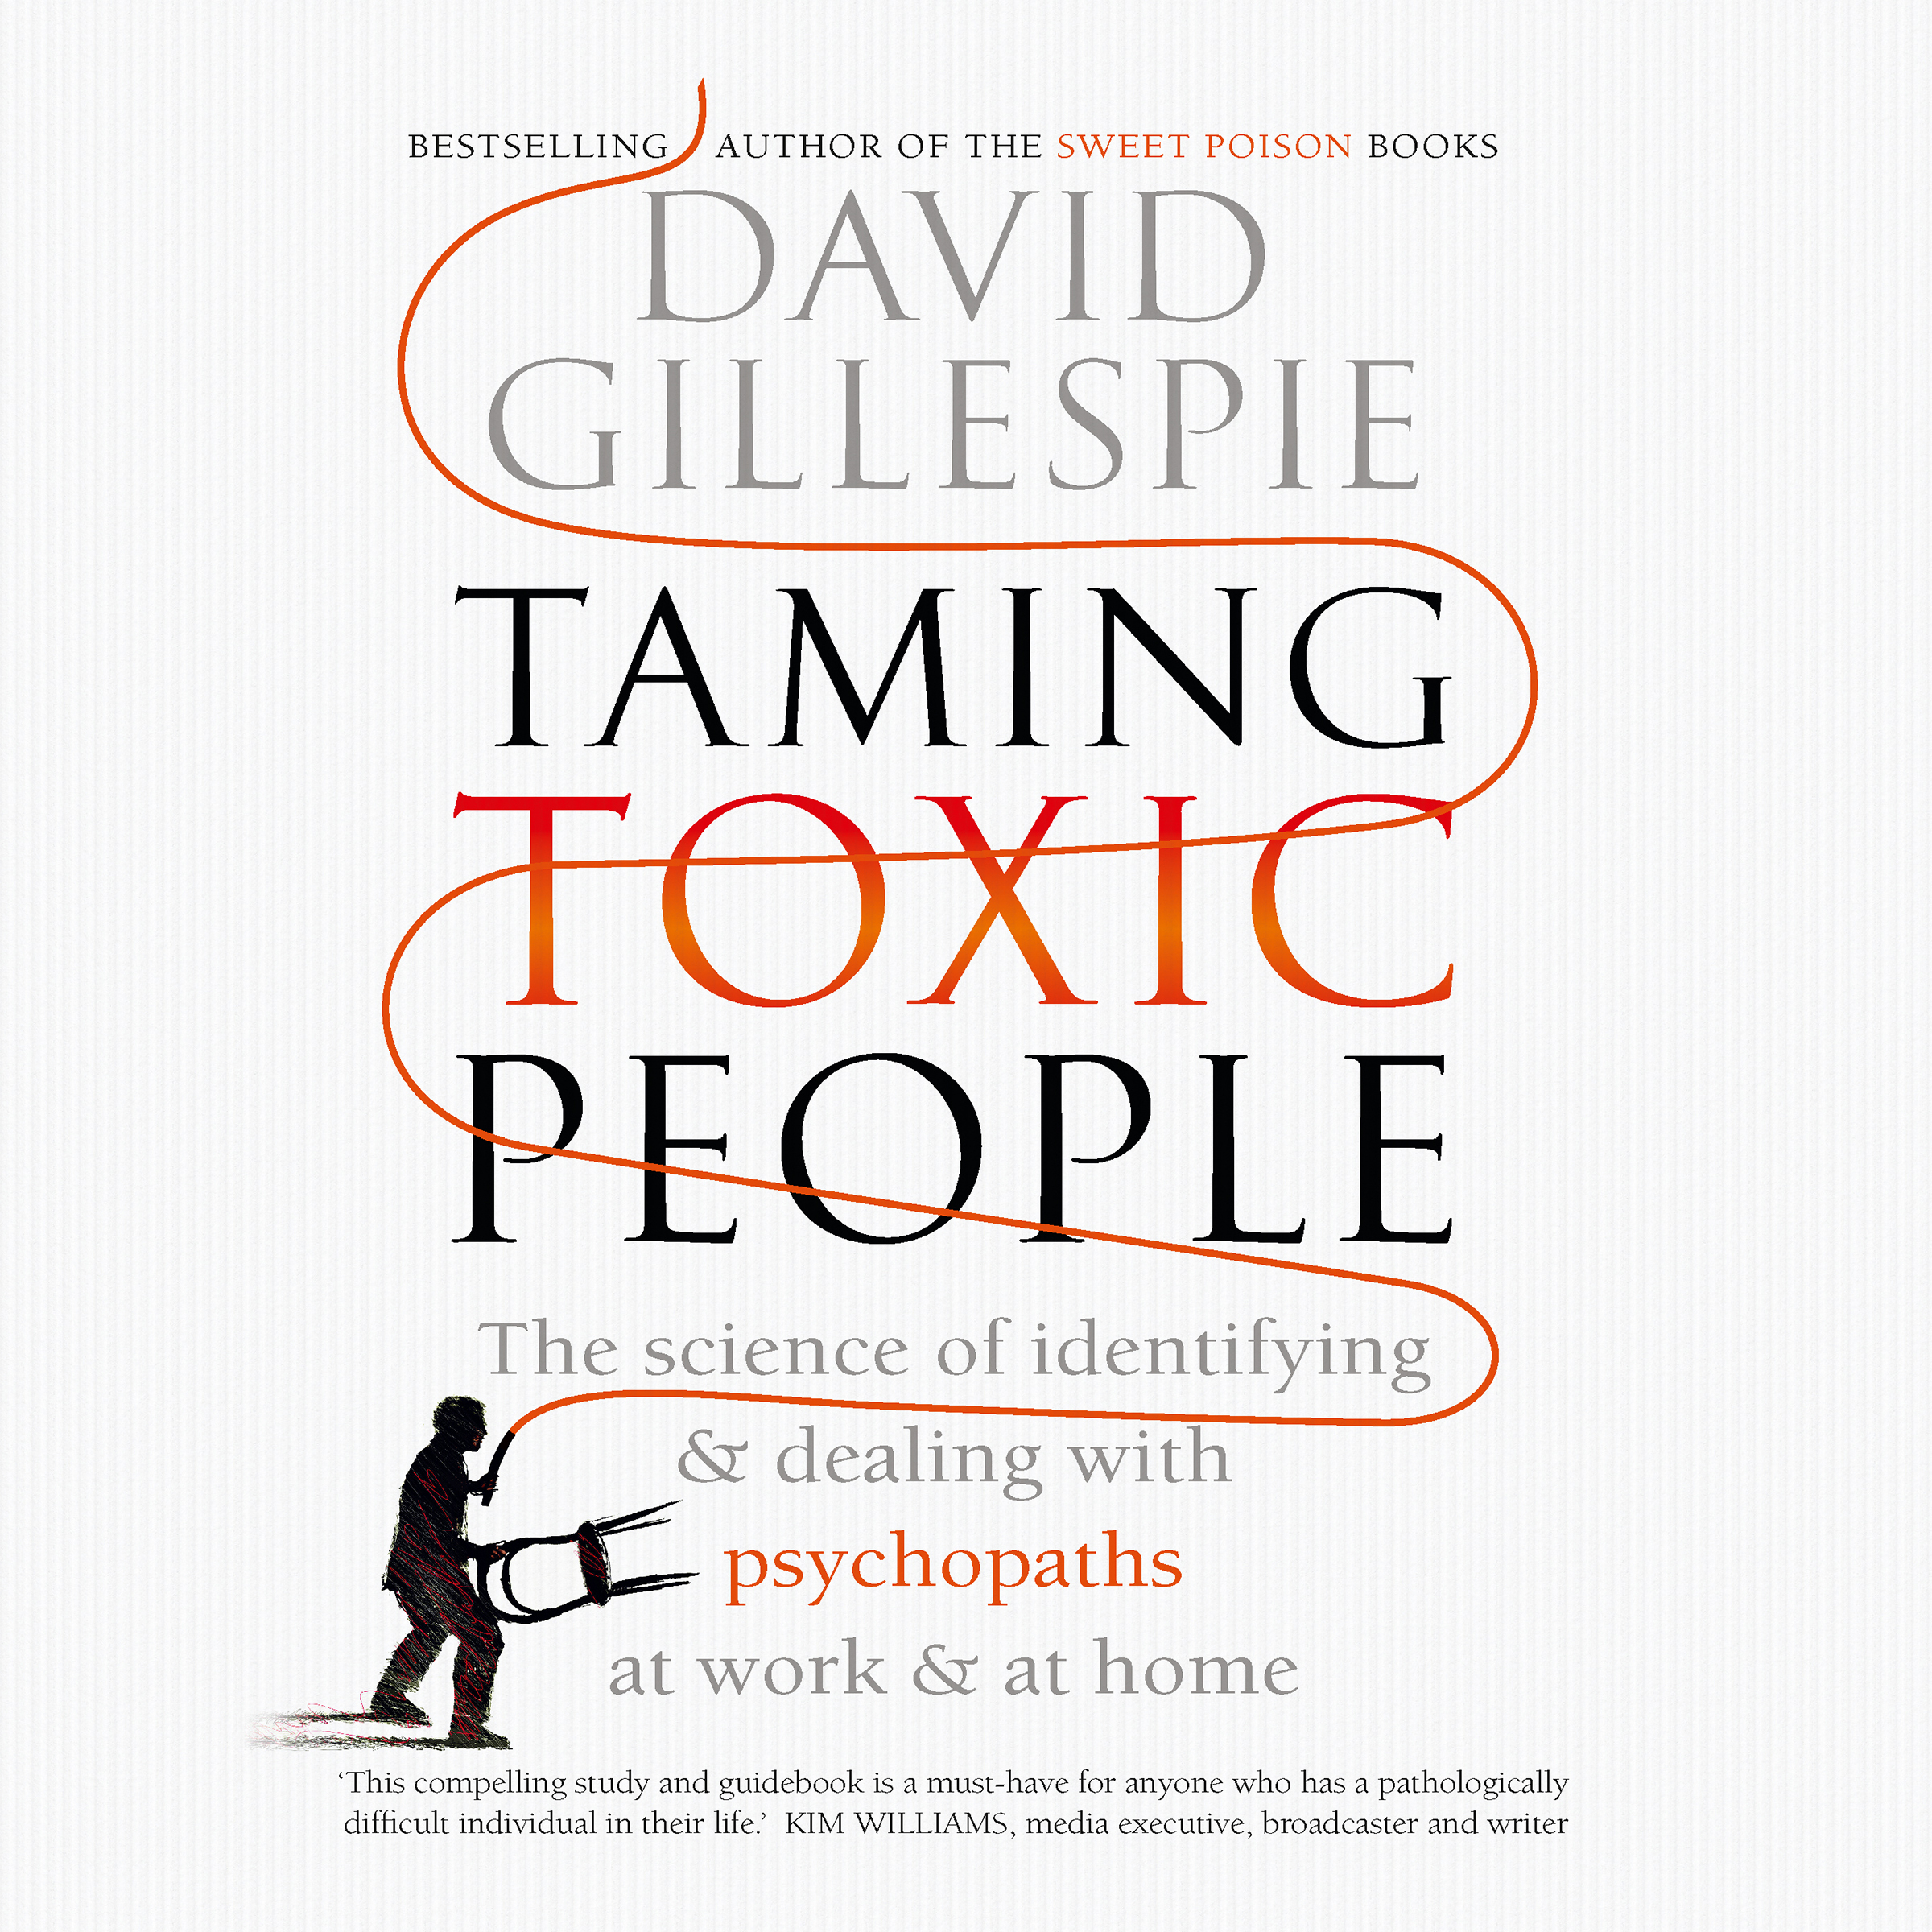 Taming Toxic People by David Gillespie, ISBN: 9781743535875